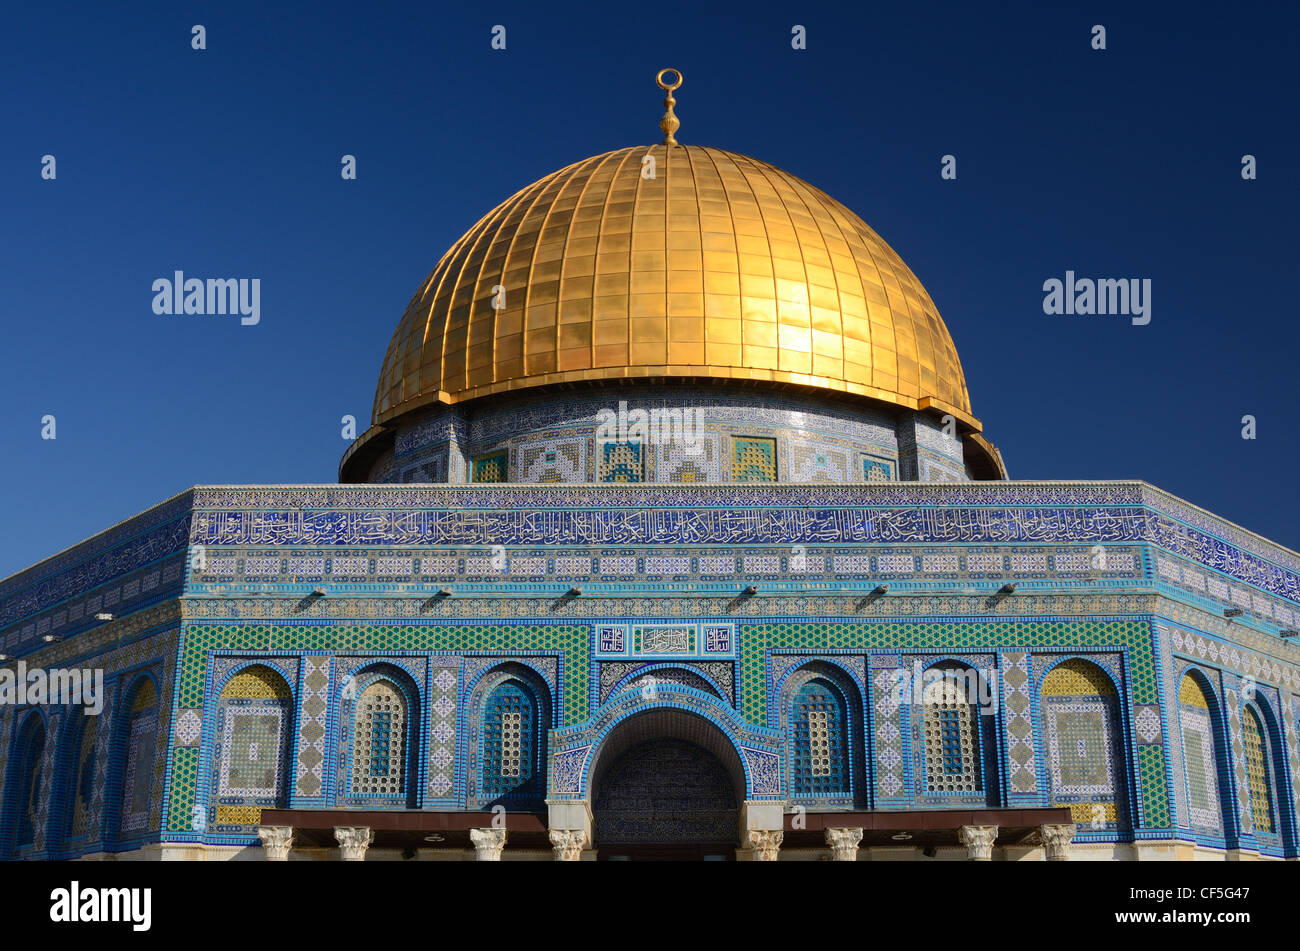 Dome of the Rock in Jerusalem, Israel. - Stock Image